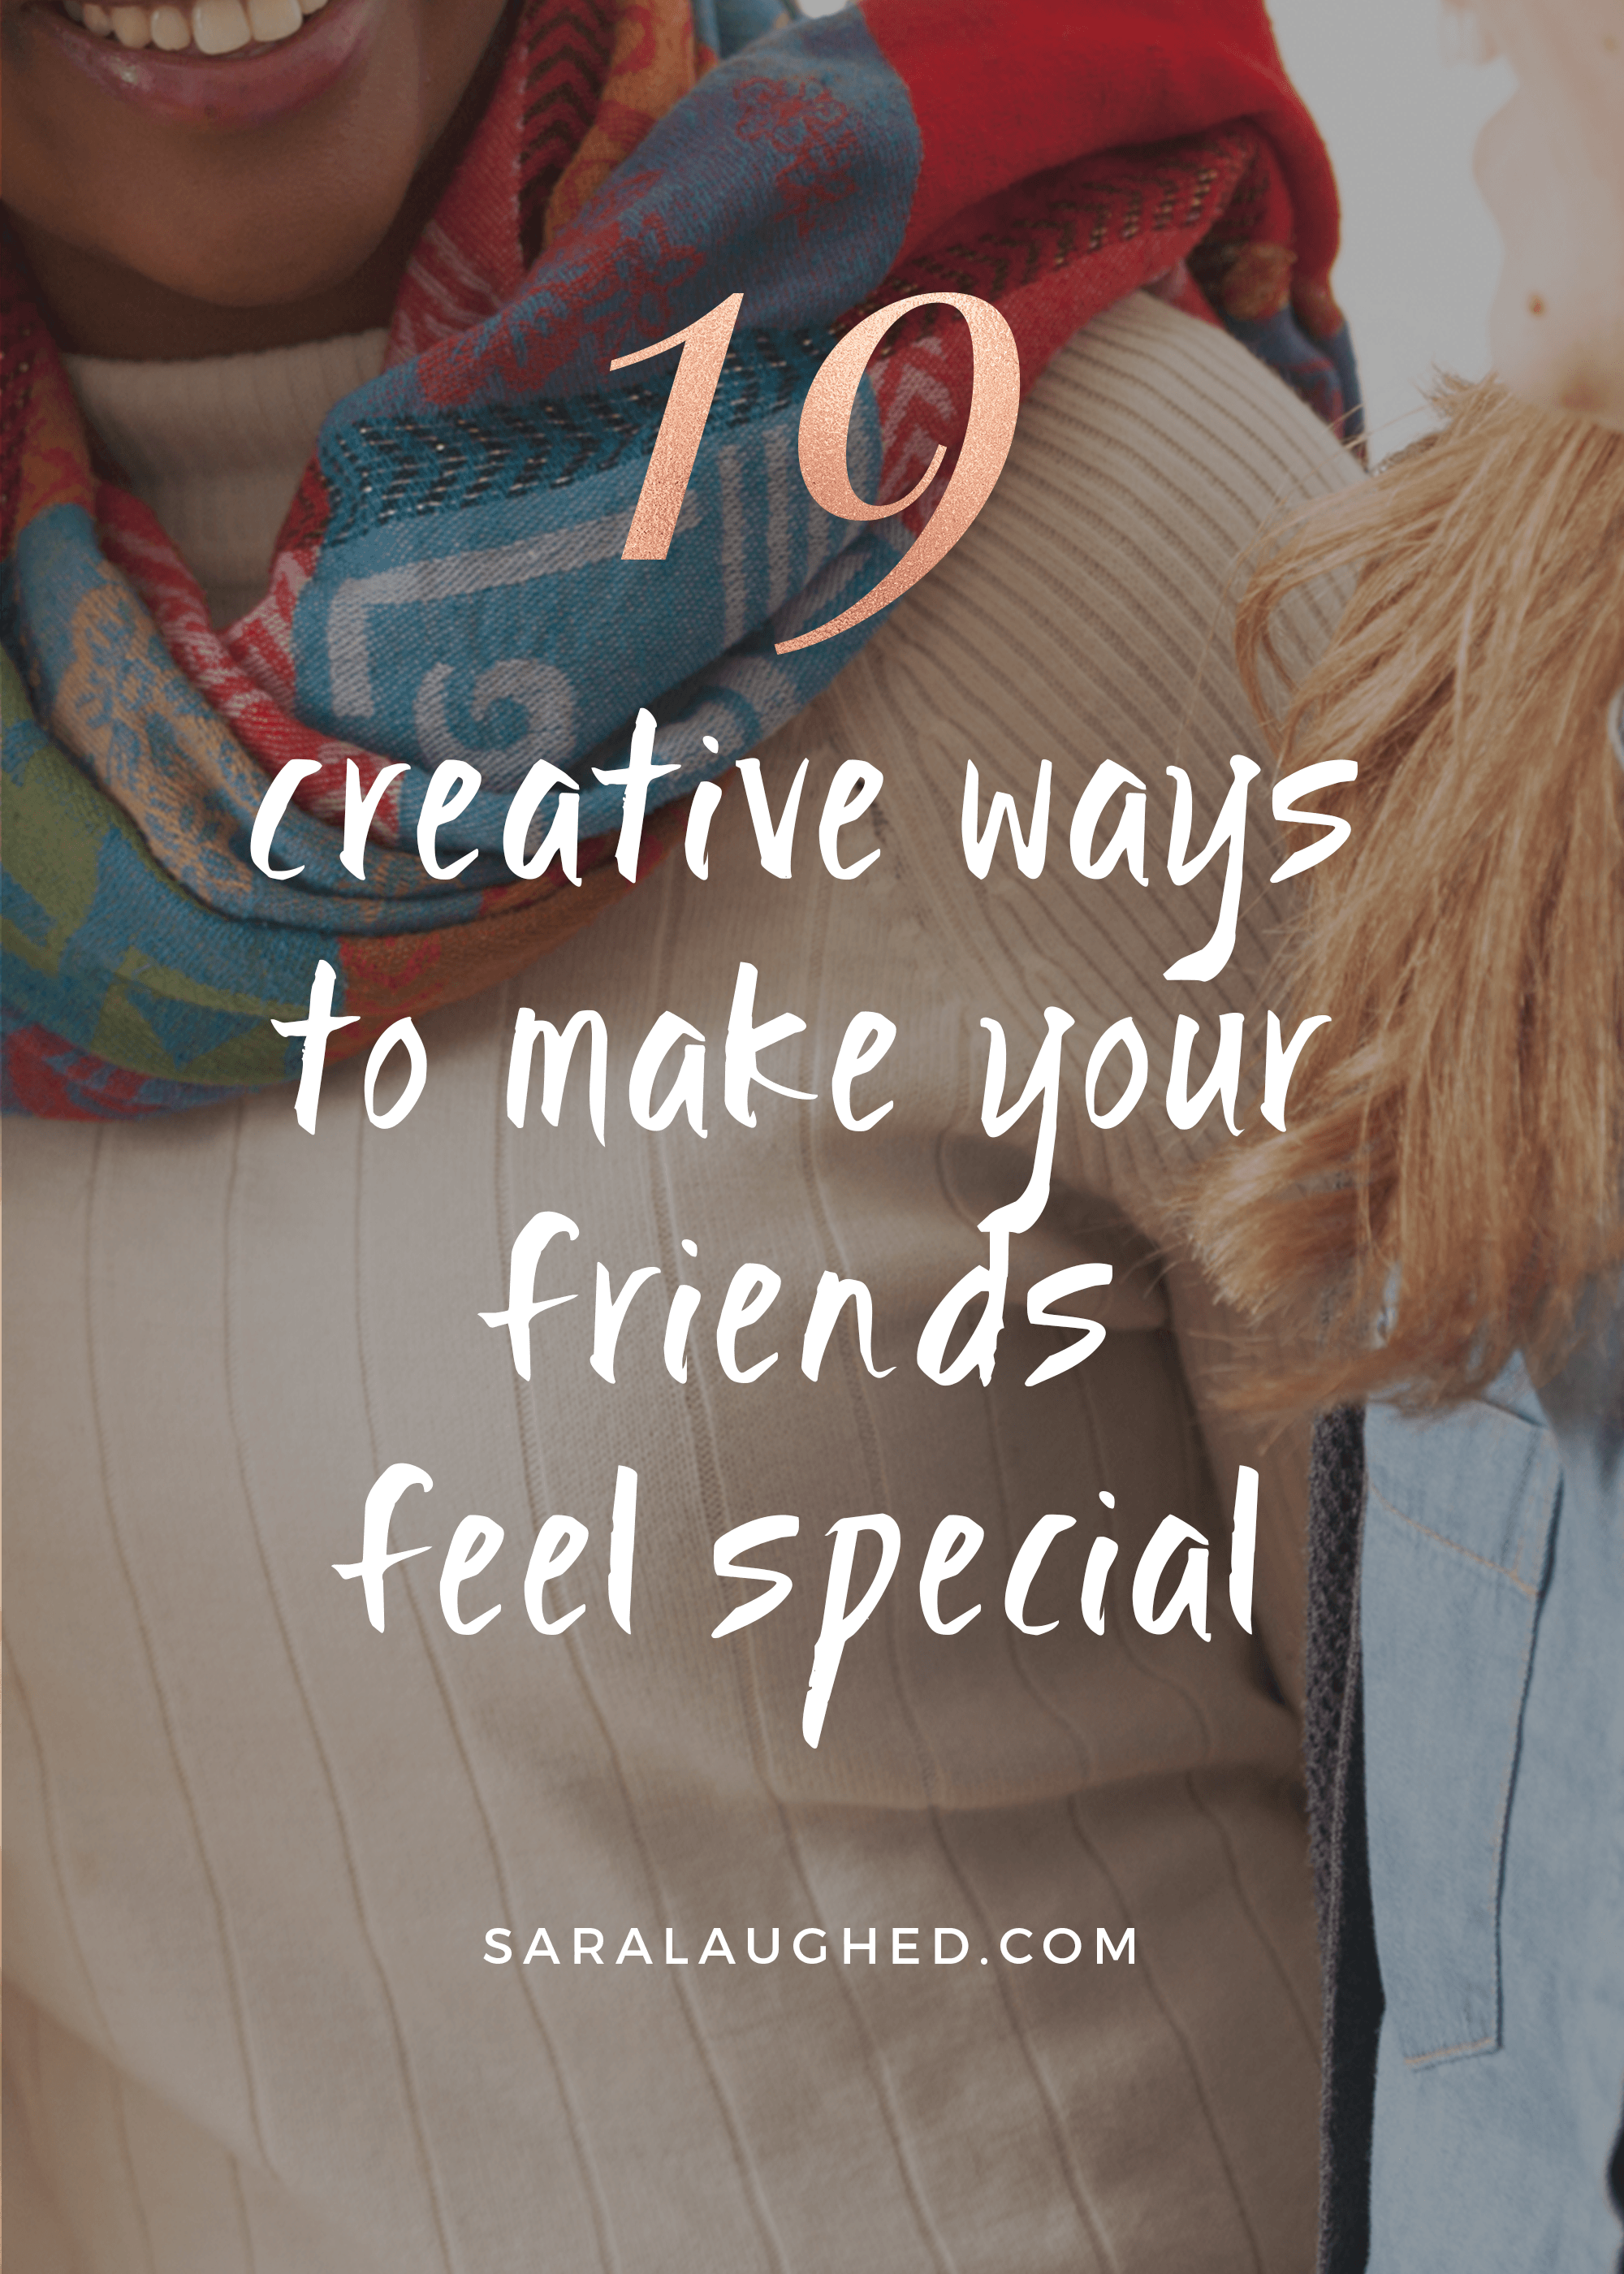 Best Friend Goals: 19 Ways to Make Your Friends Feel Special